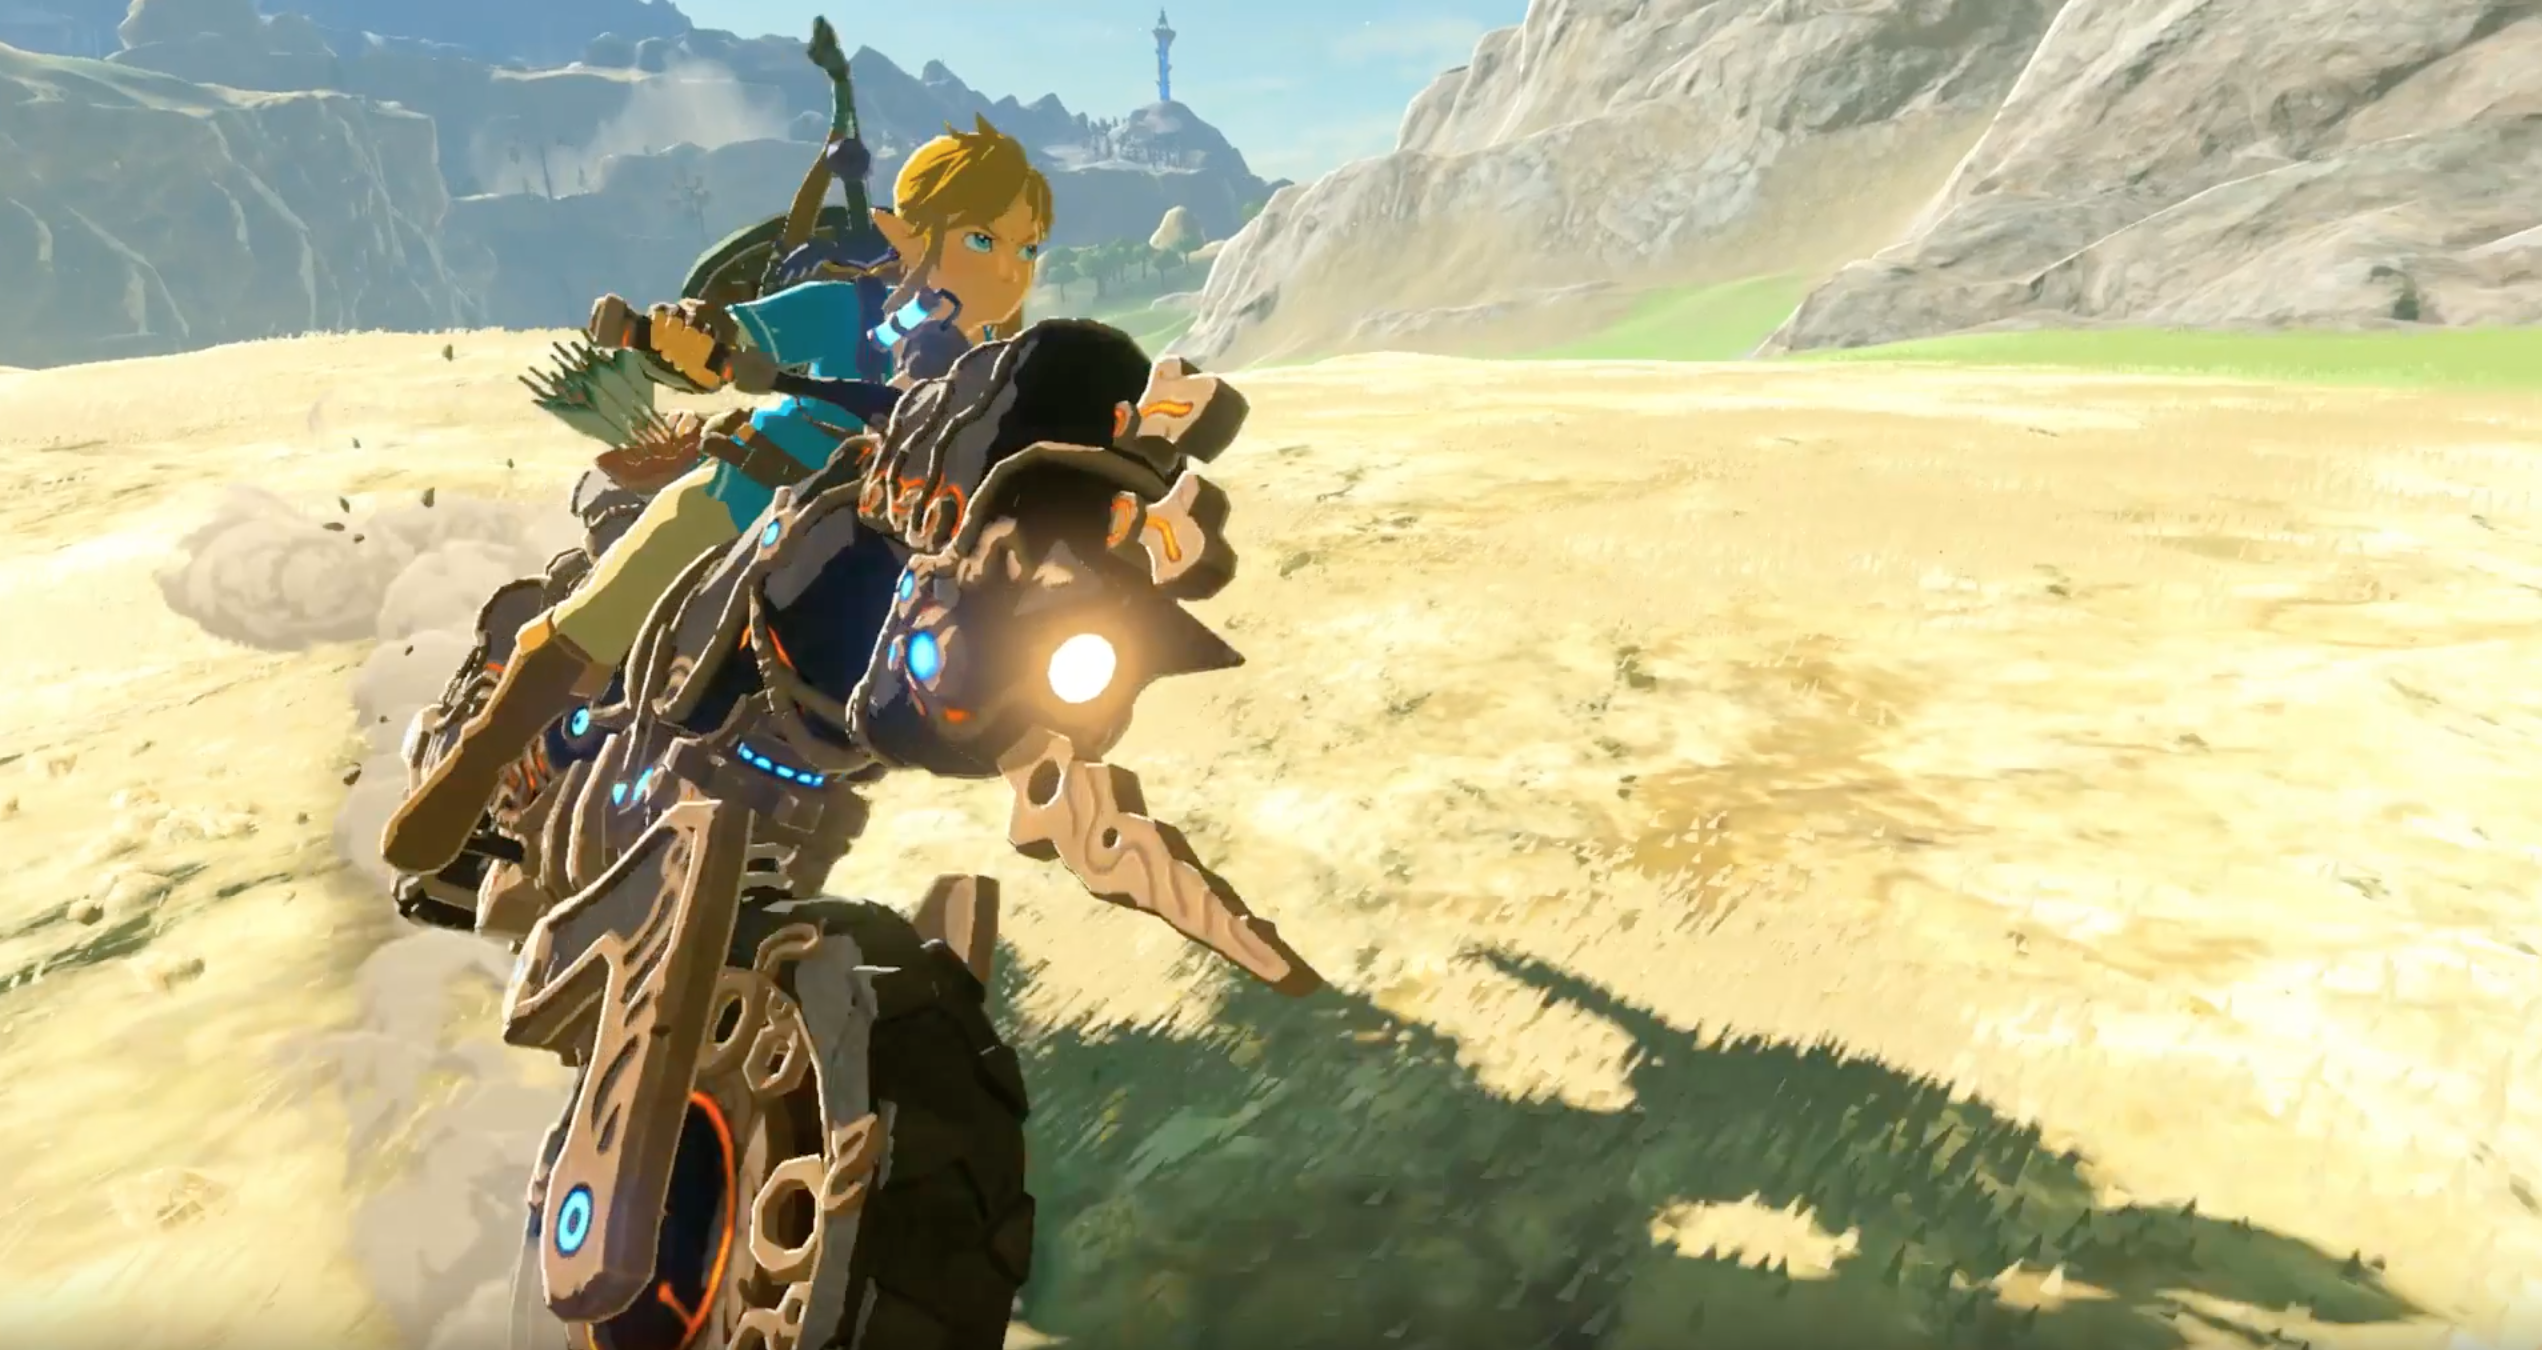 Zelda Breath Of The Wild Master Cycle: Link Can Ride A Motorcycle In Breath Of The Wild's New DLC